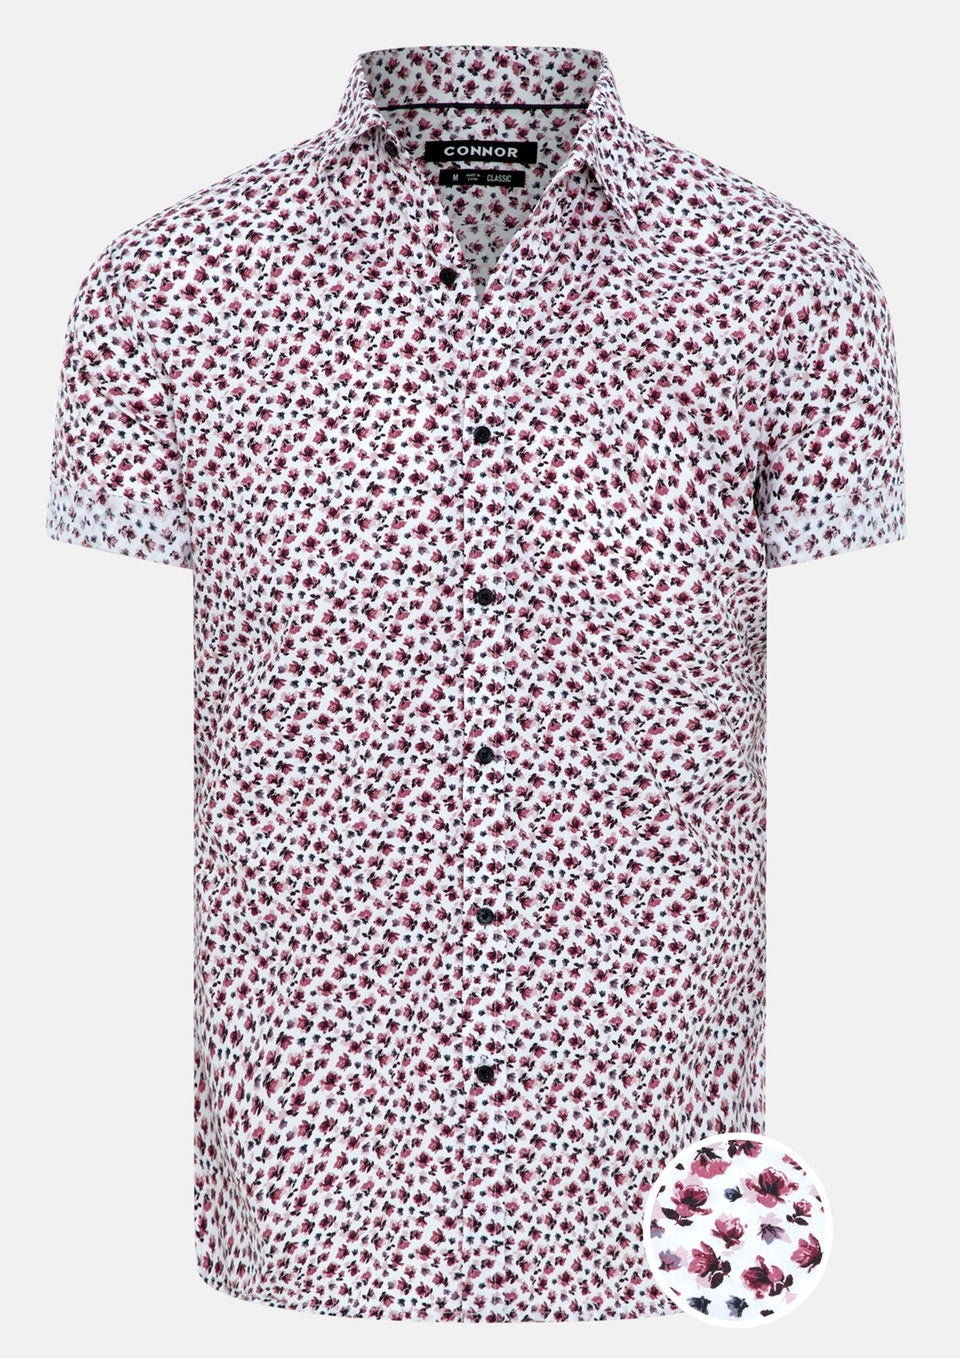 Connor Radley Shirt